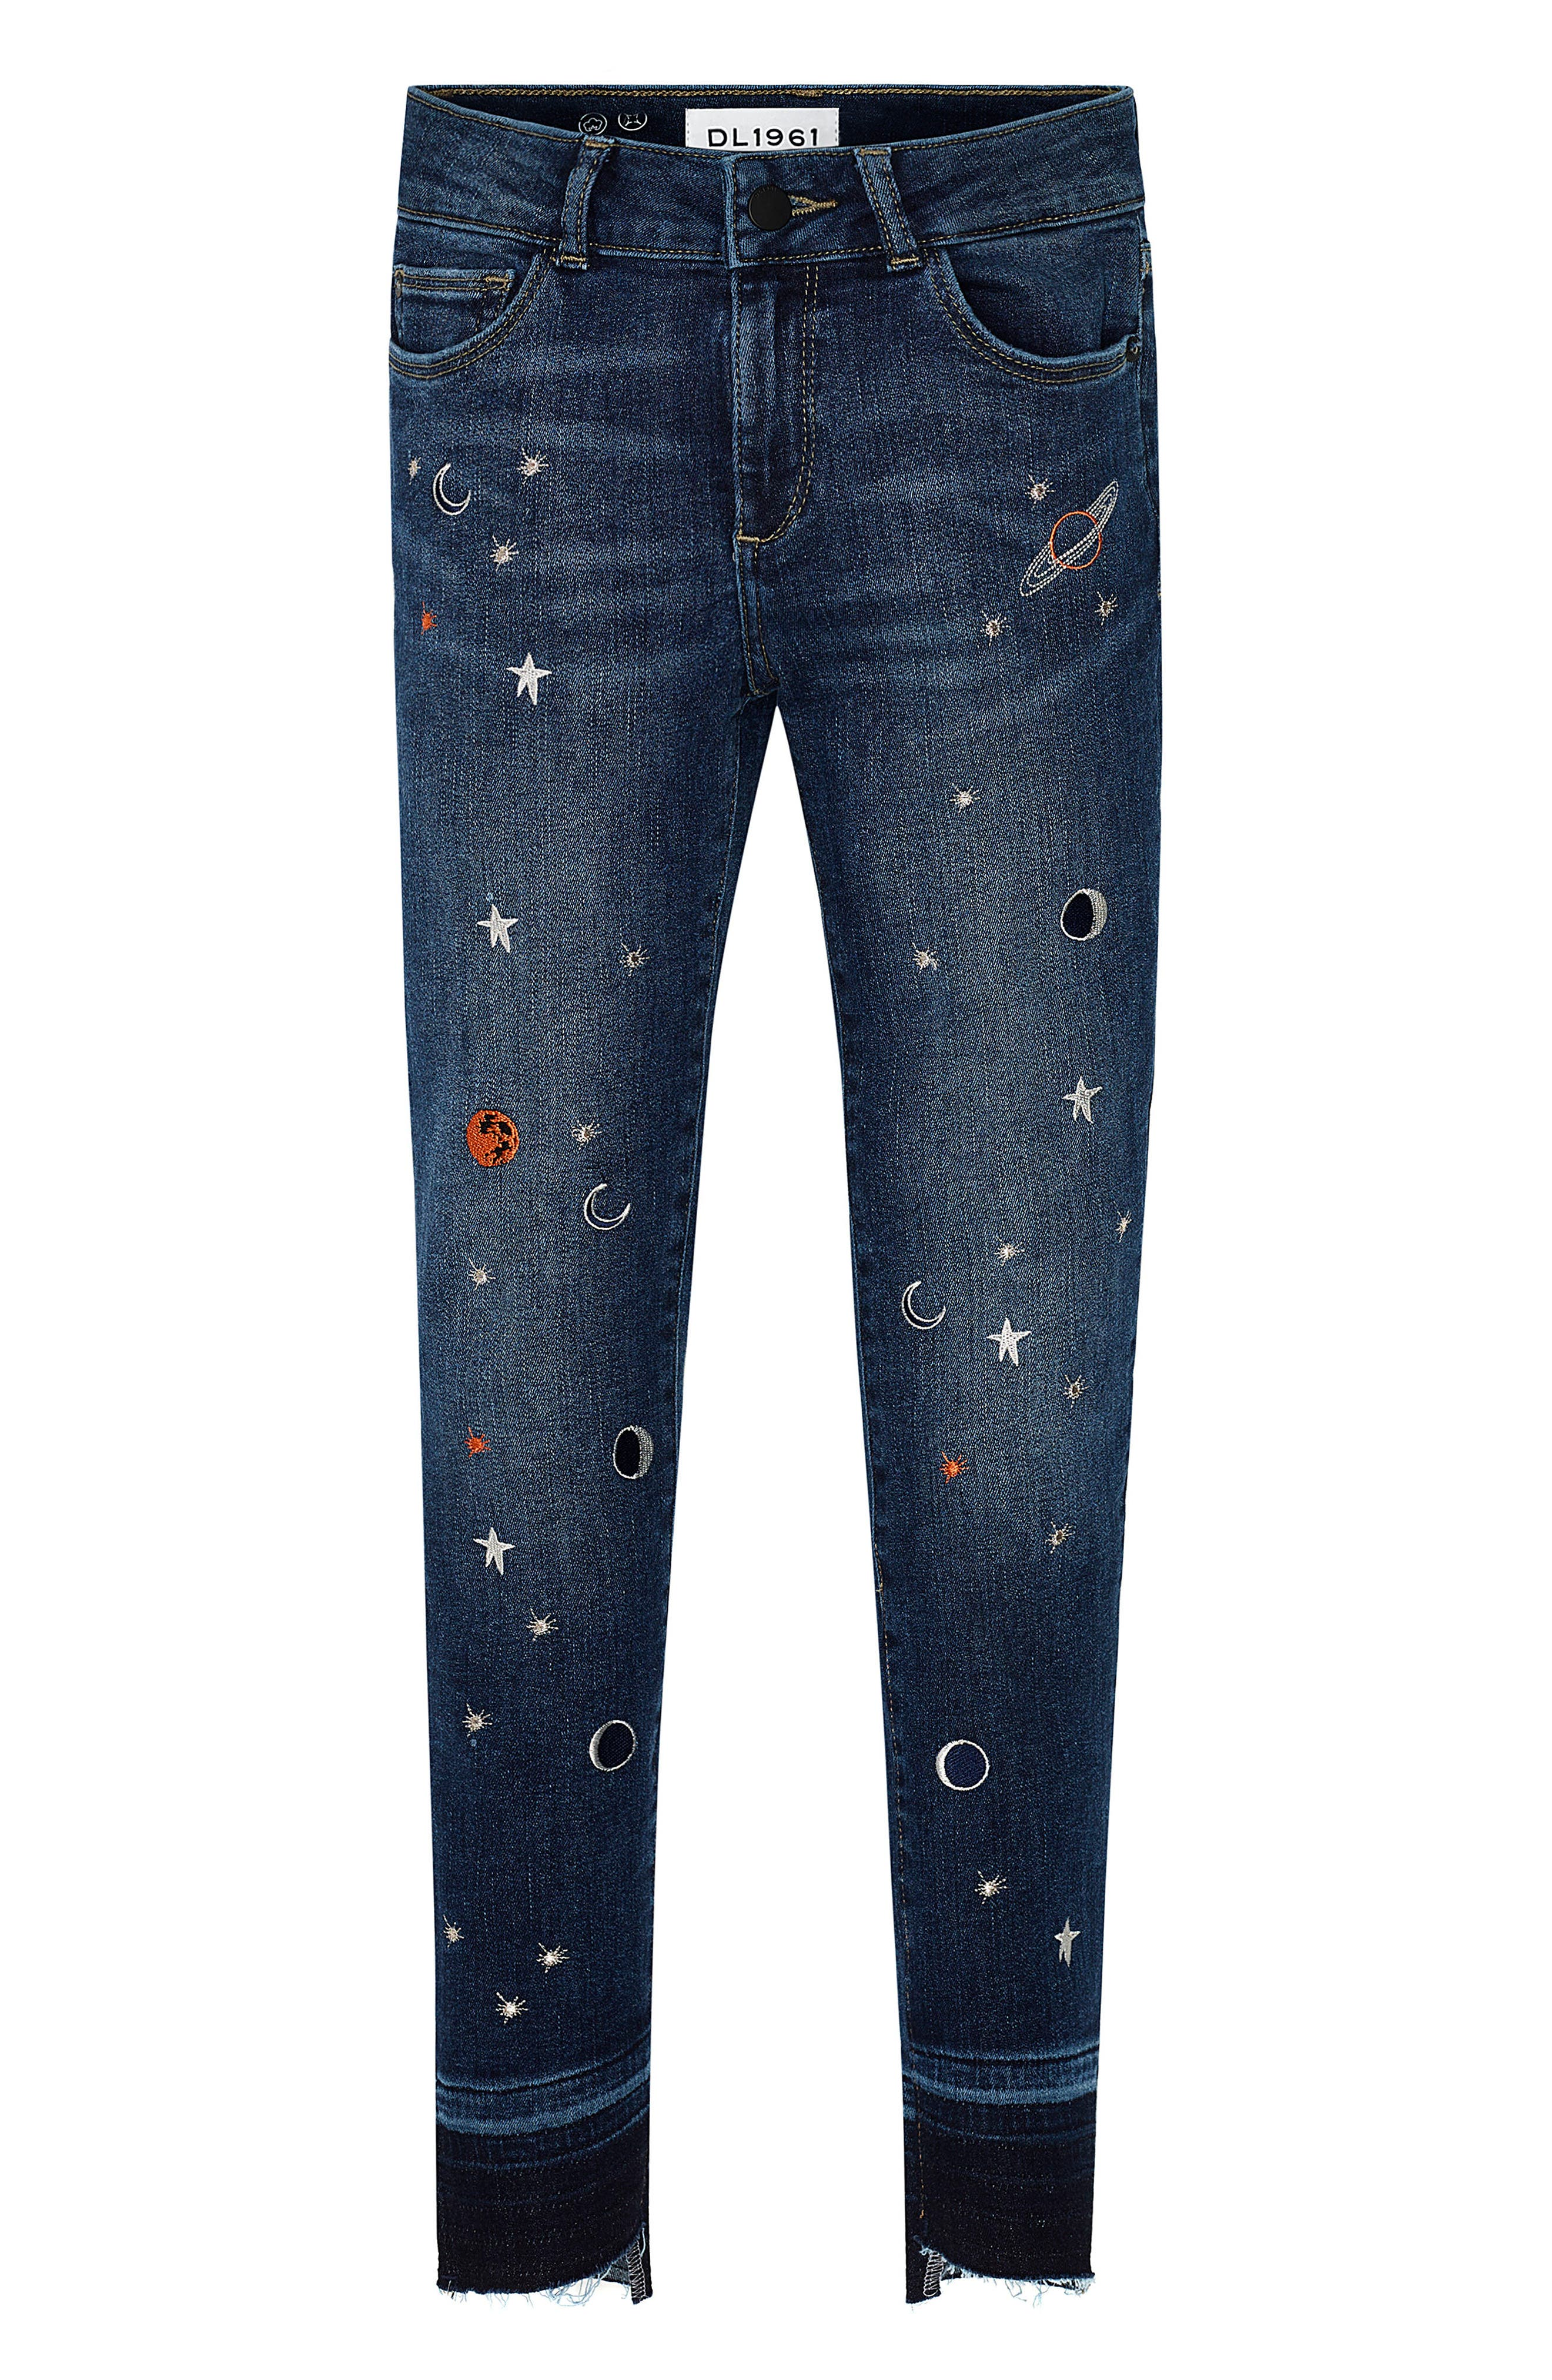 Chloe Galaxy Embroidered Skinny Jeans,                             Main thumbnail 1, color,                             405